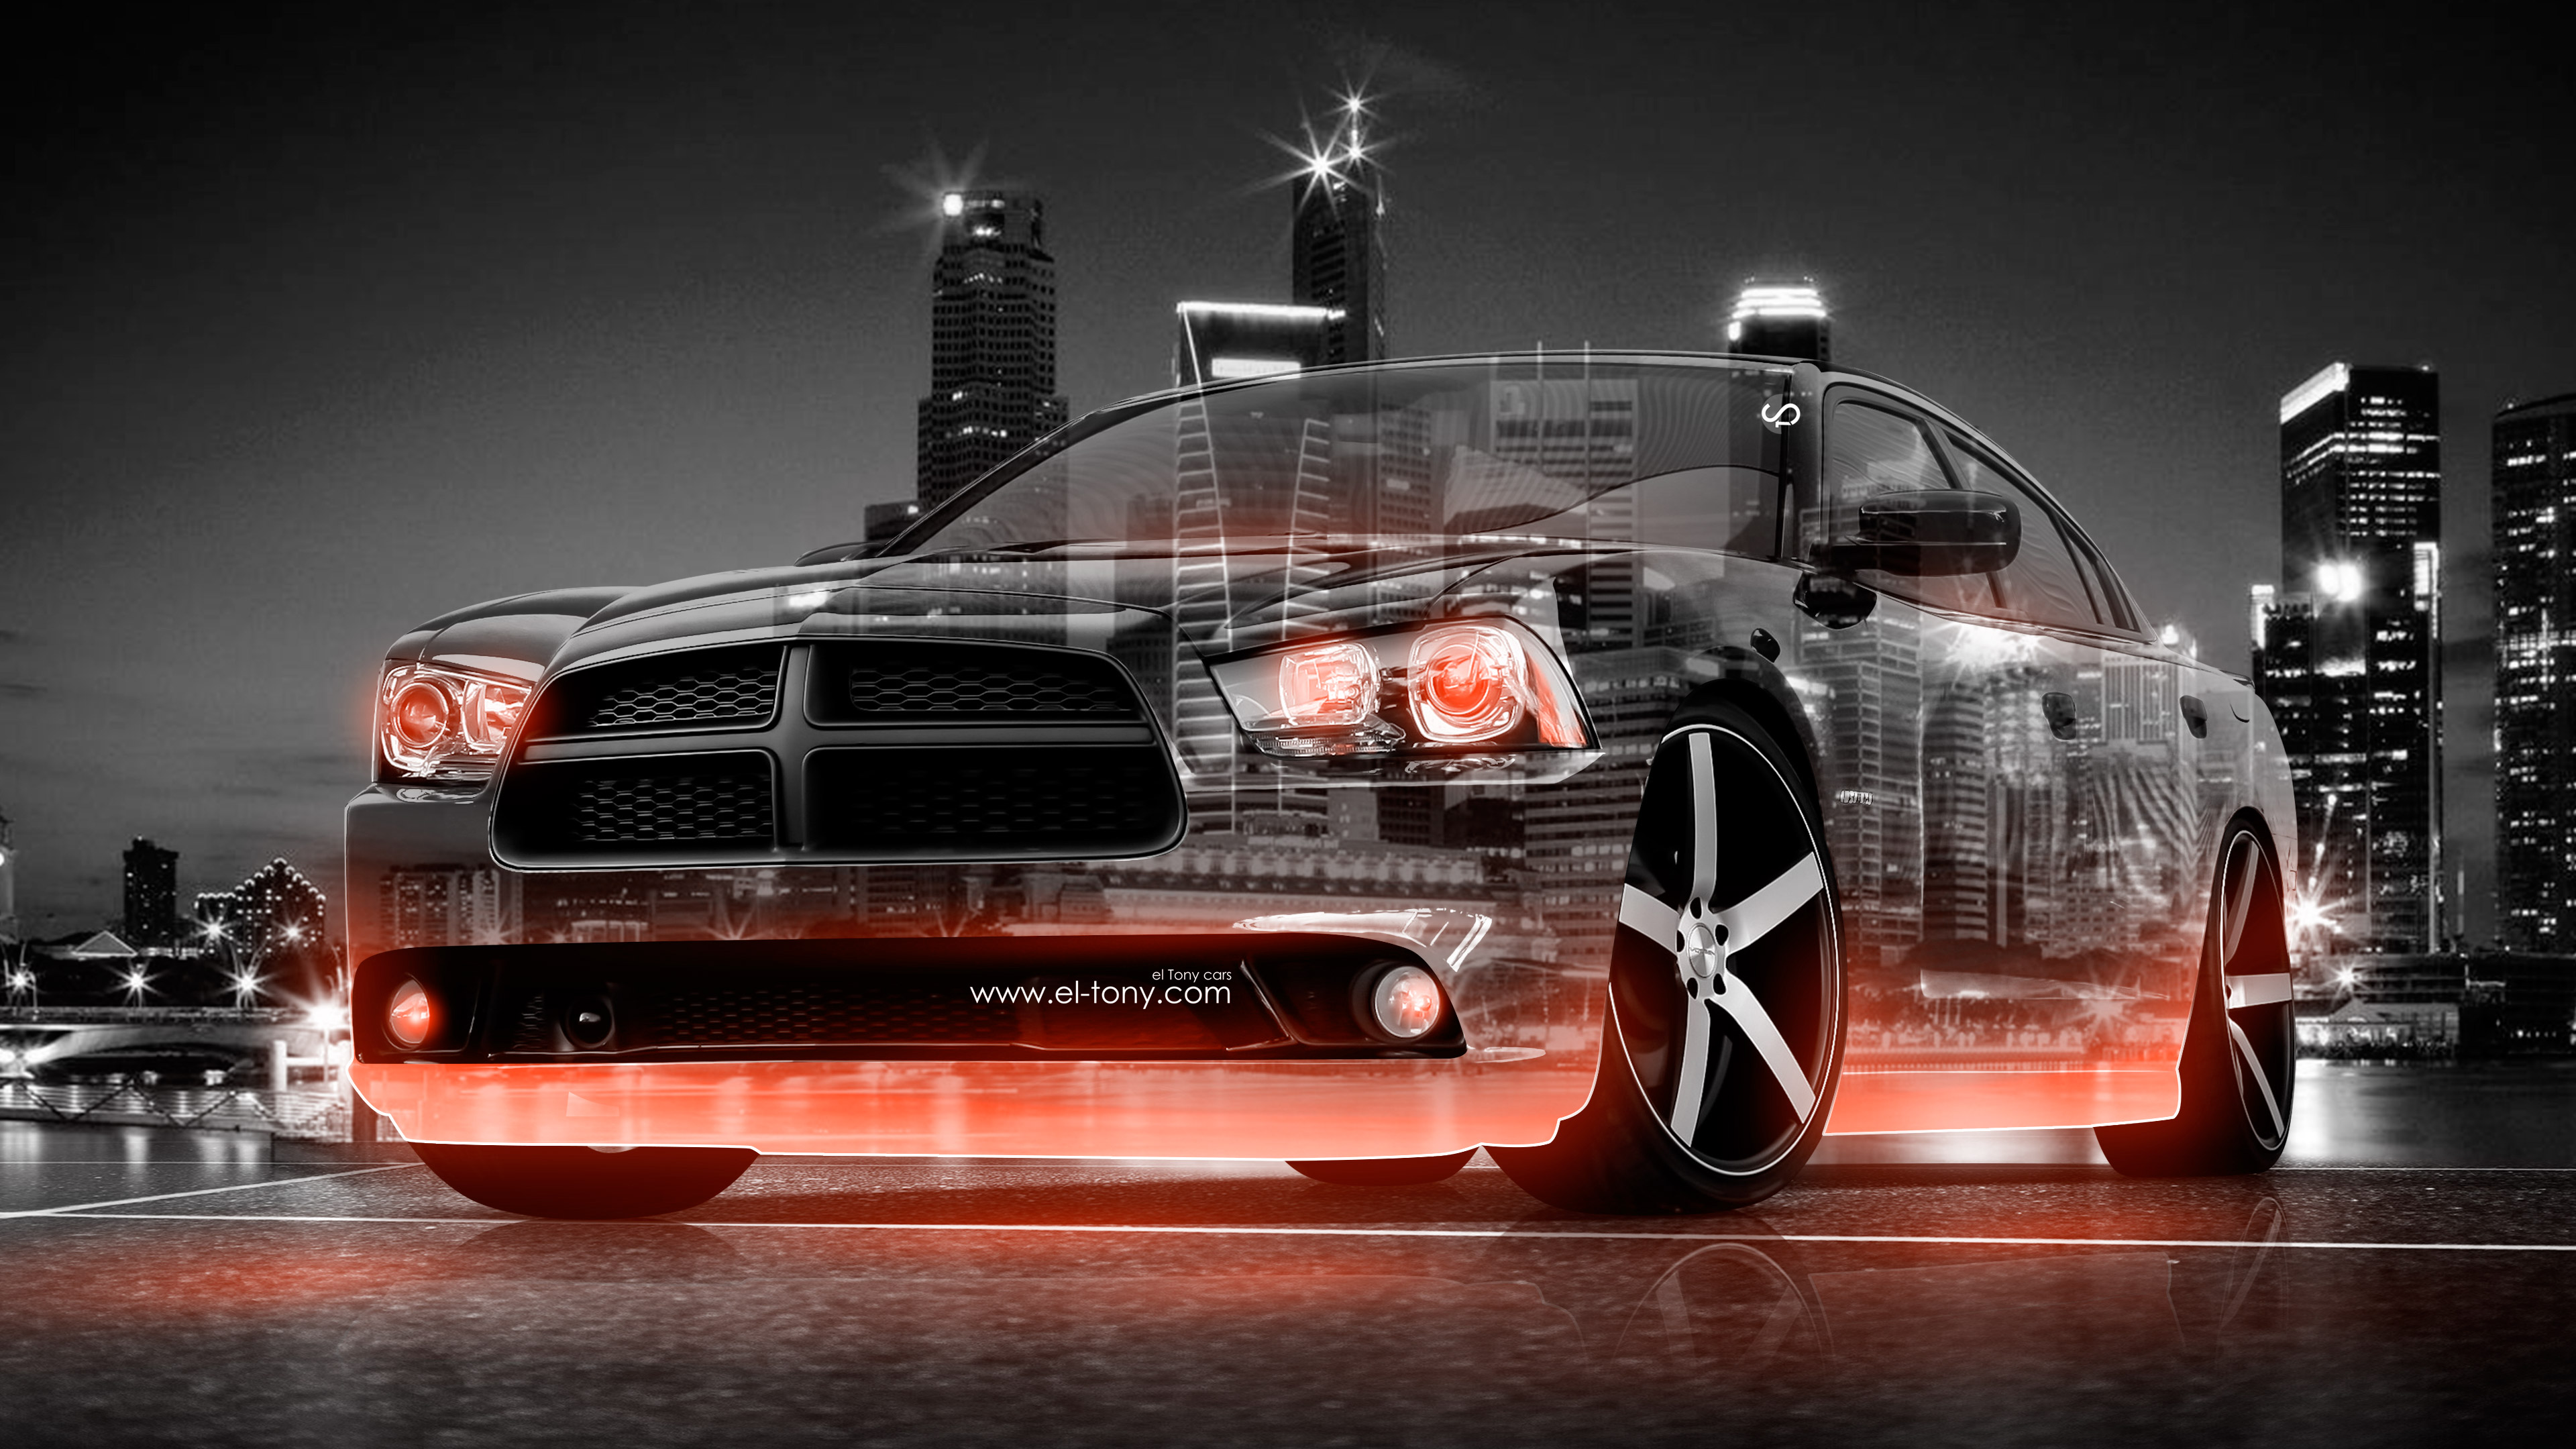 4k Dodge Charger Rt Muscle Crystal City Car 2015 El Tony